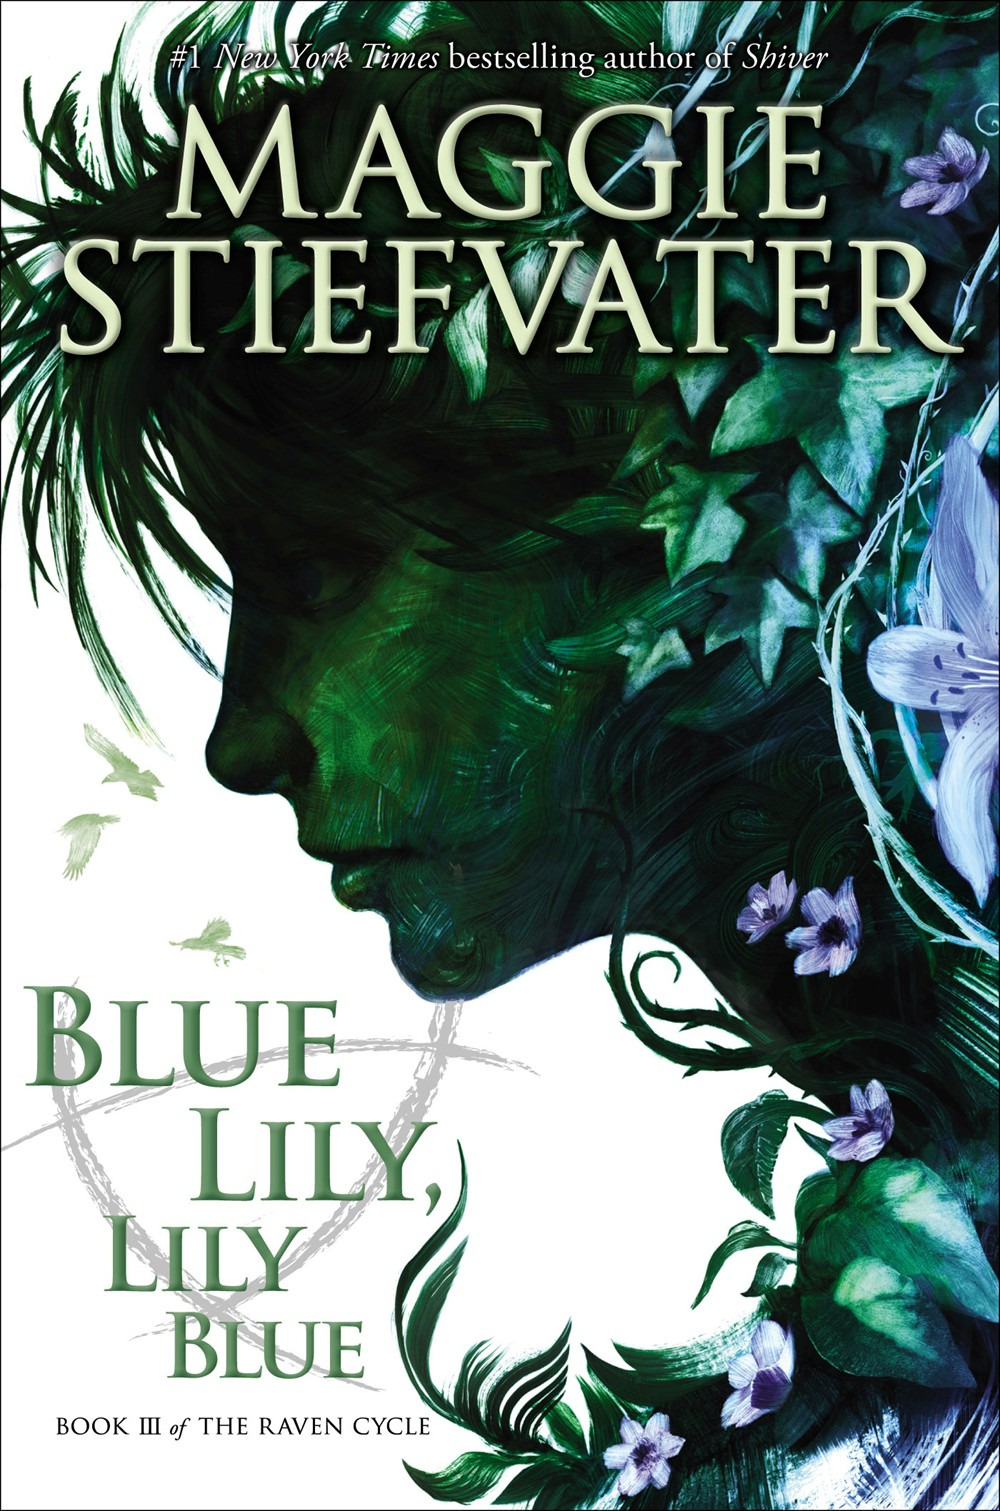 Blue Lily, Lily Blue by Maggie Stiefvater - Clear Eyes, Full Shelves